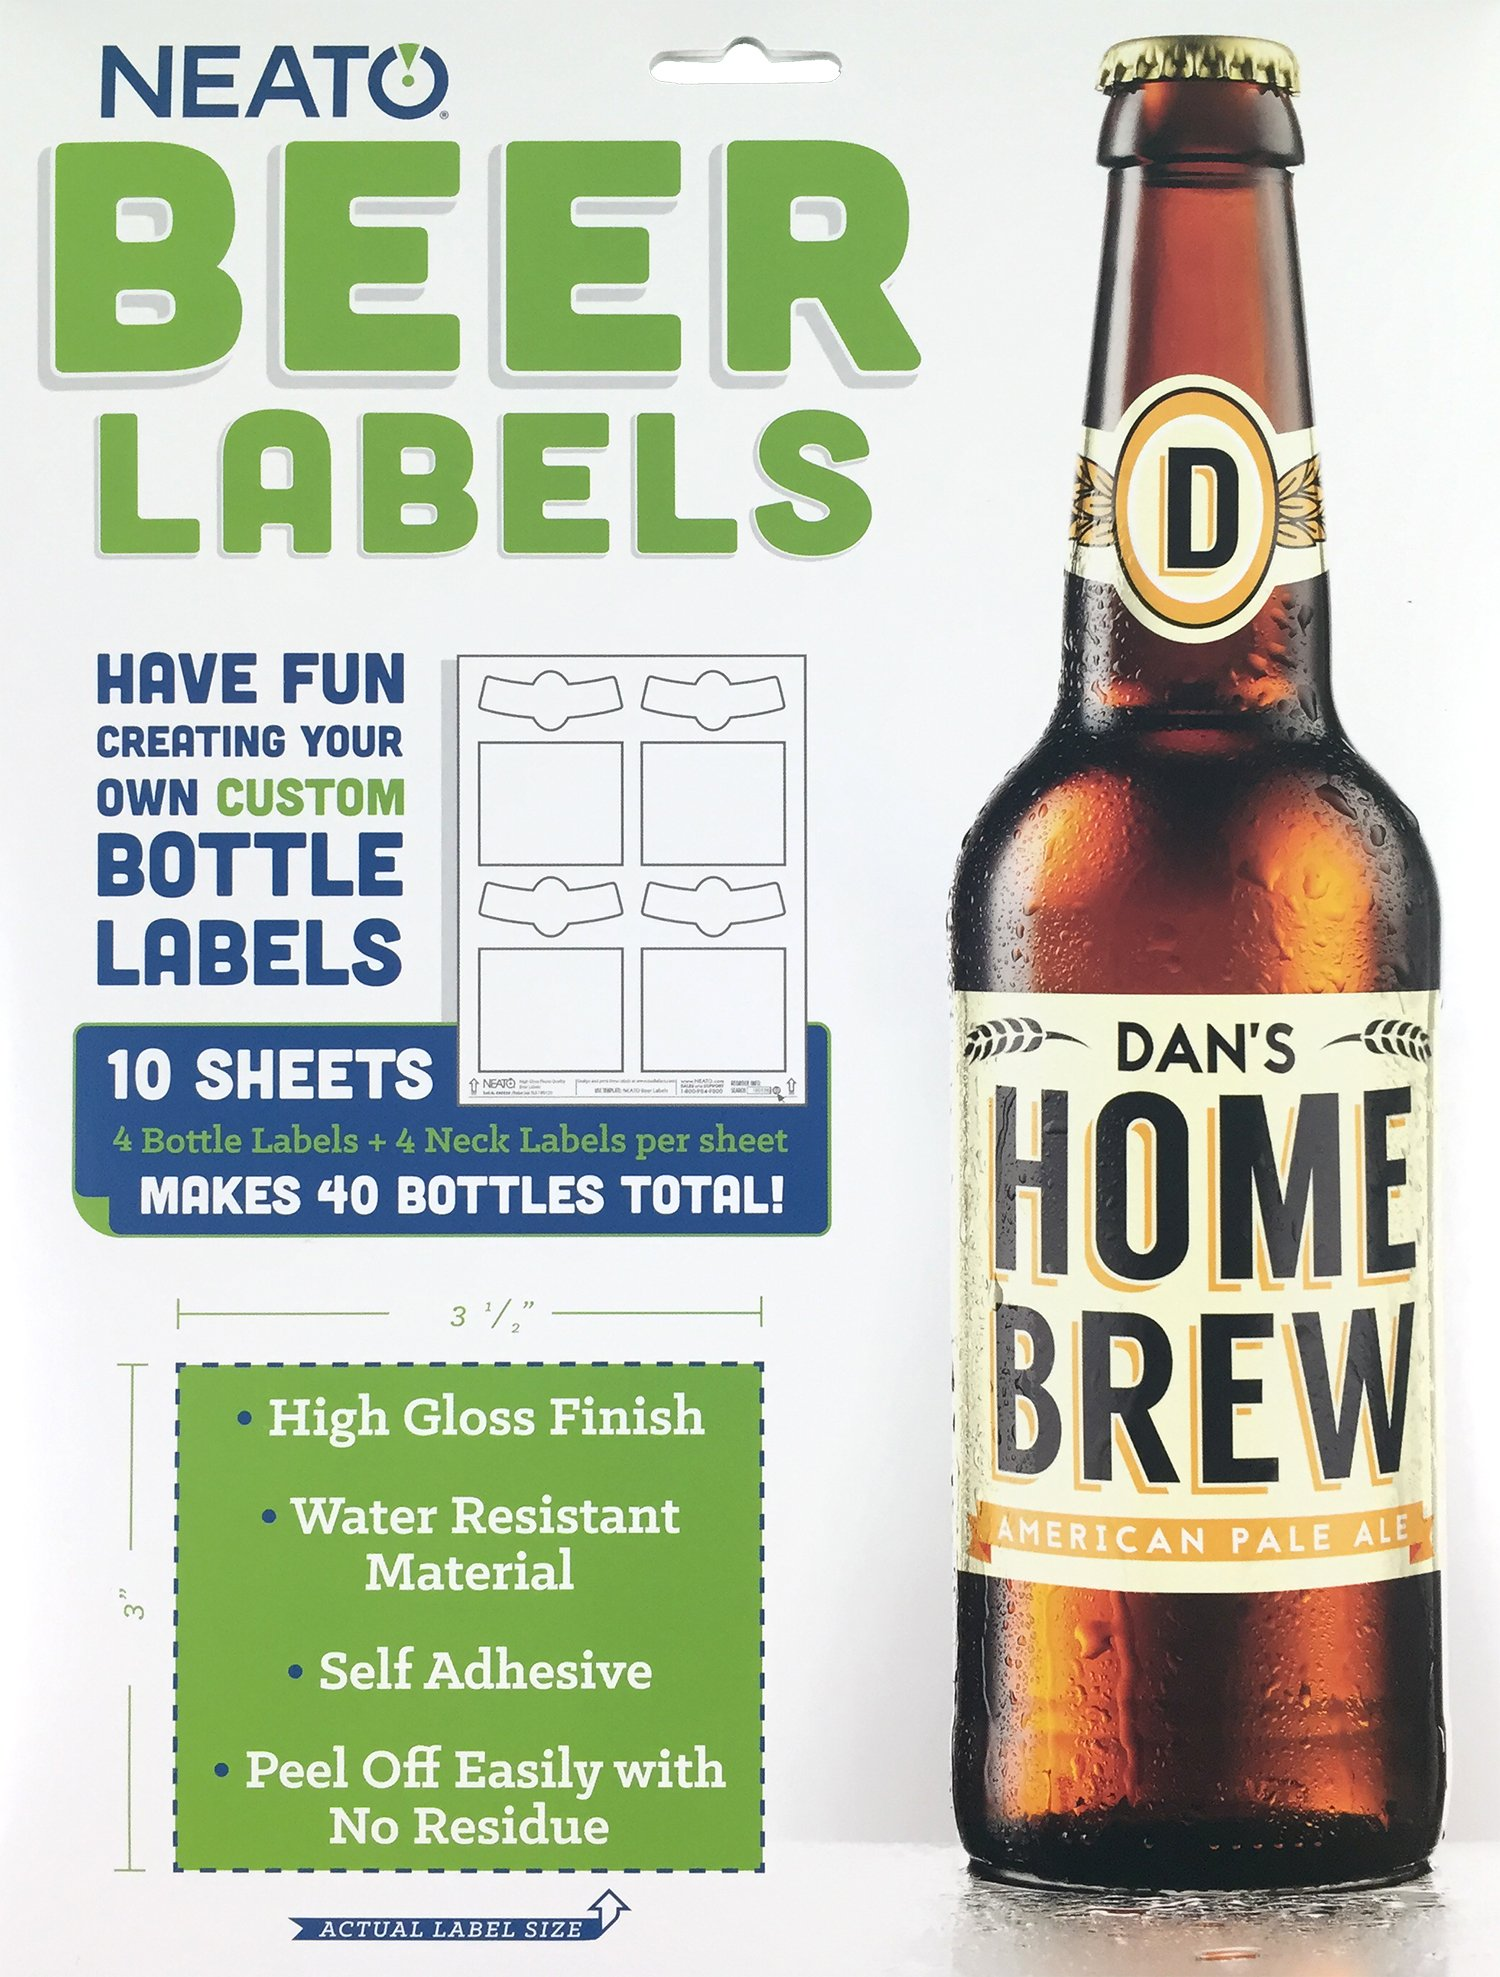 Neato Blank Beer Bottle Labels - 10 Sheets - 40 Total Labels - Water Resistant, Vinyl, For InkJet Printers - Online Design Label Studio Included